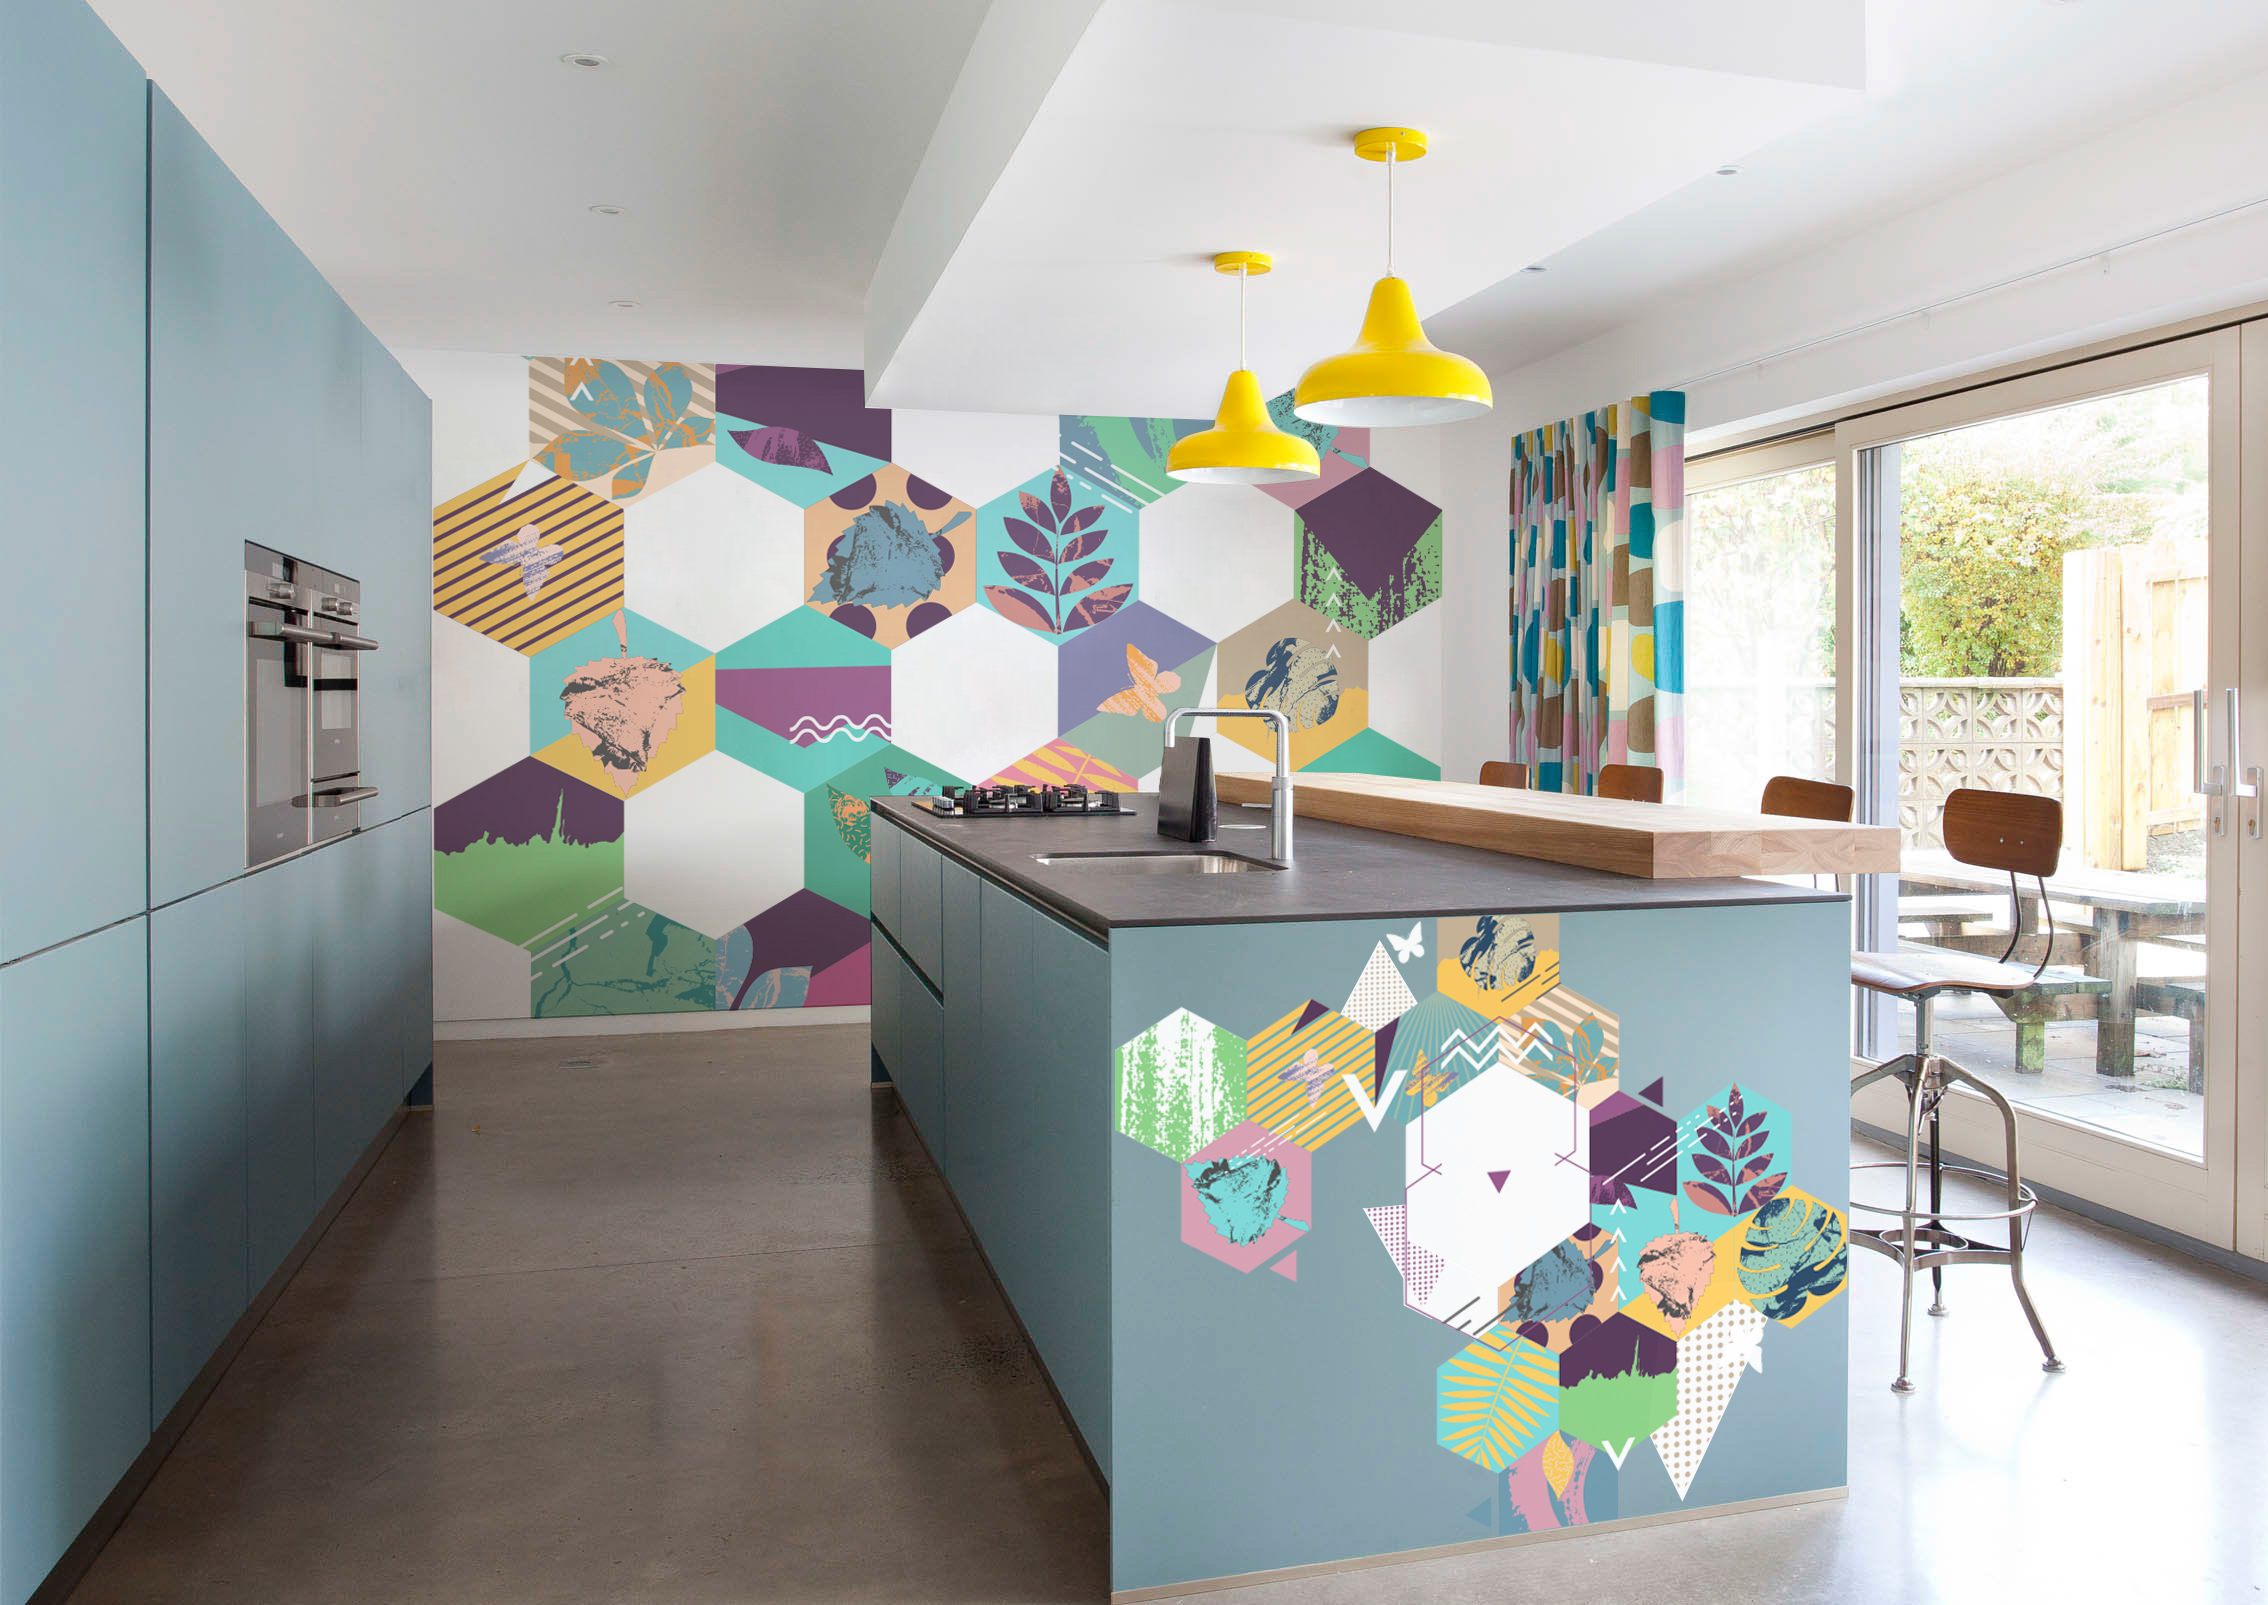 Geometric kitchen • Living room - Contemporary - Abstraction - Stickers